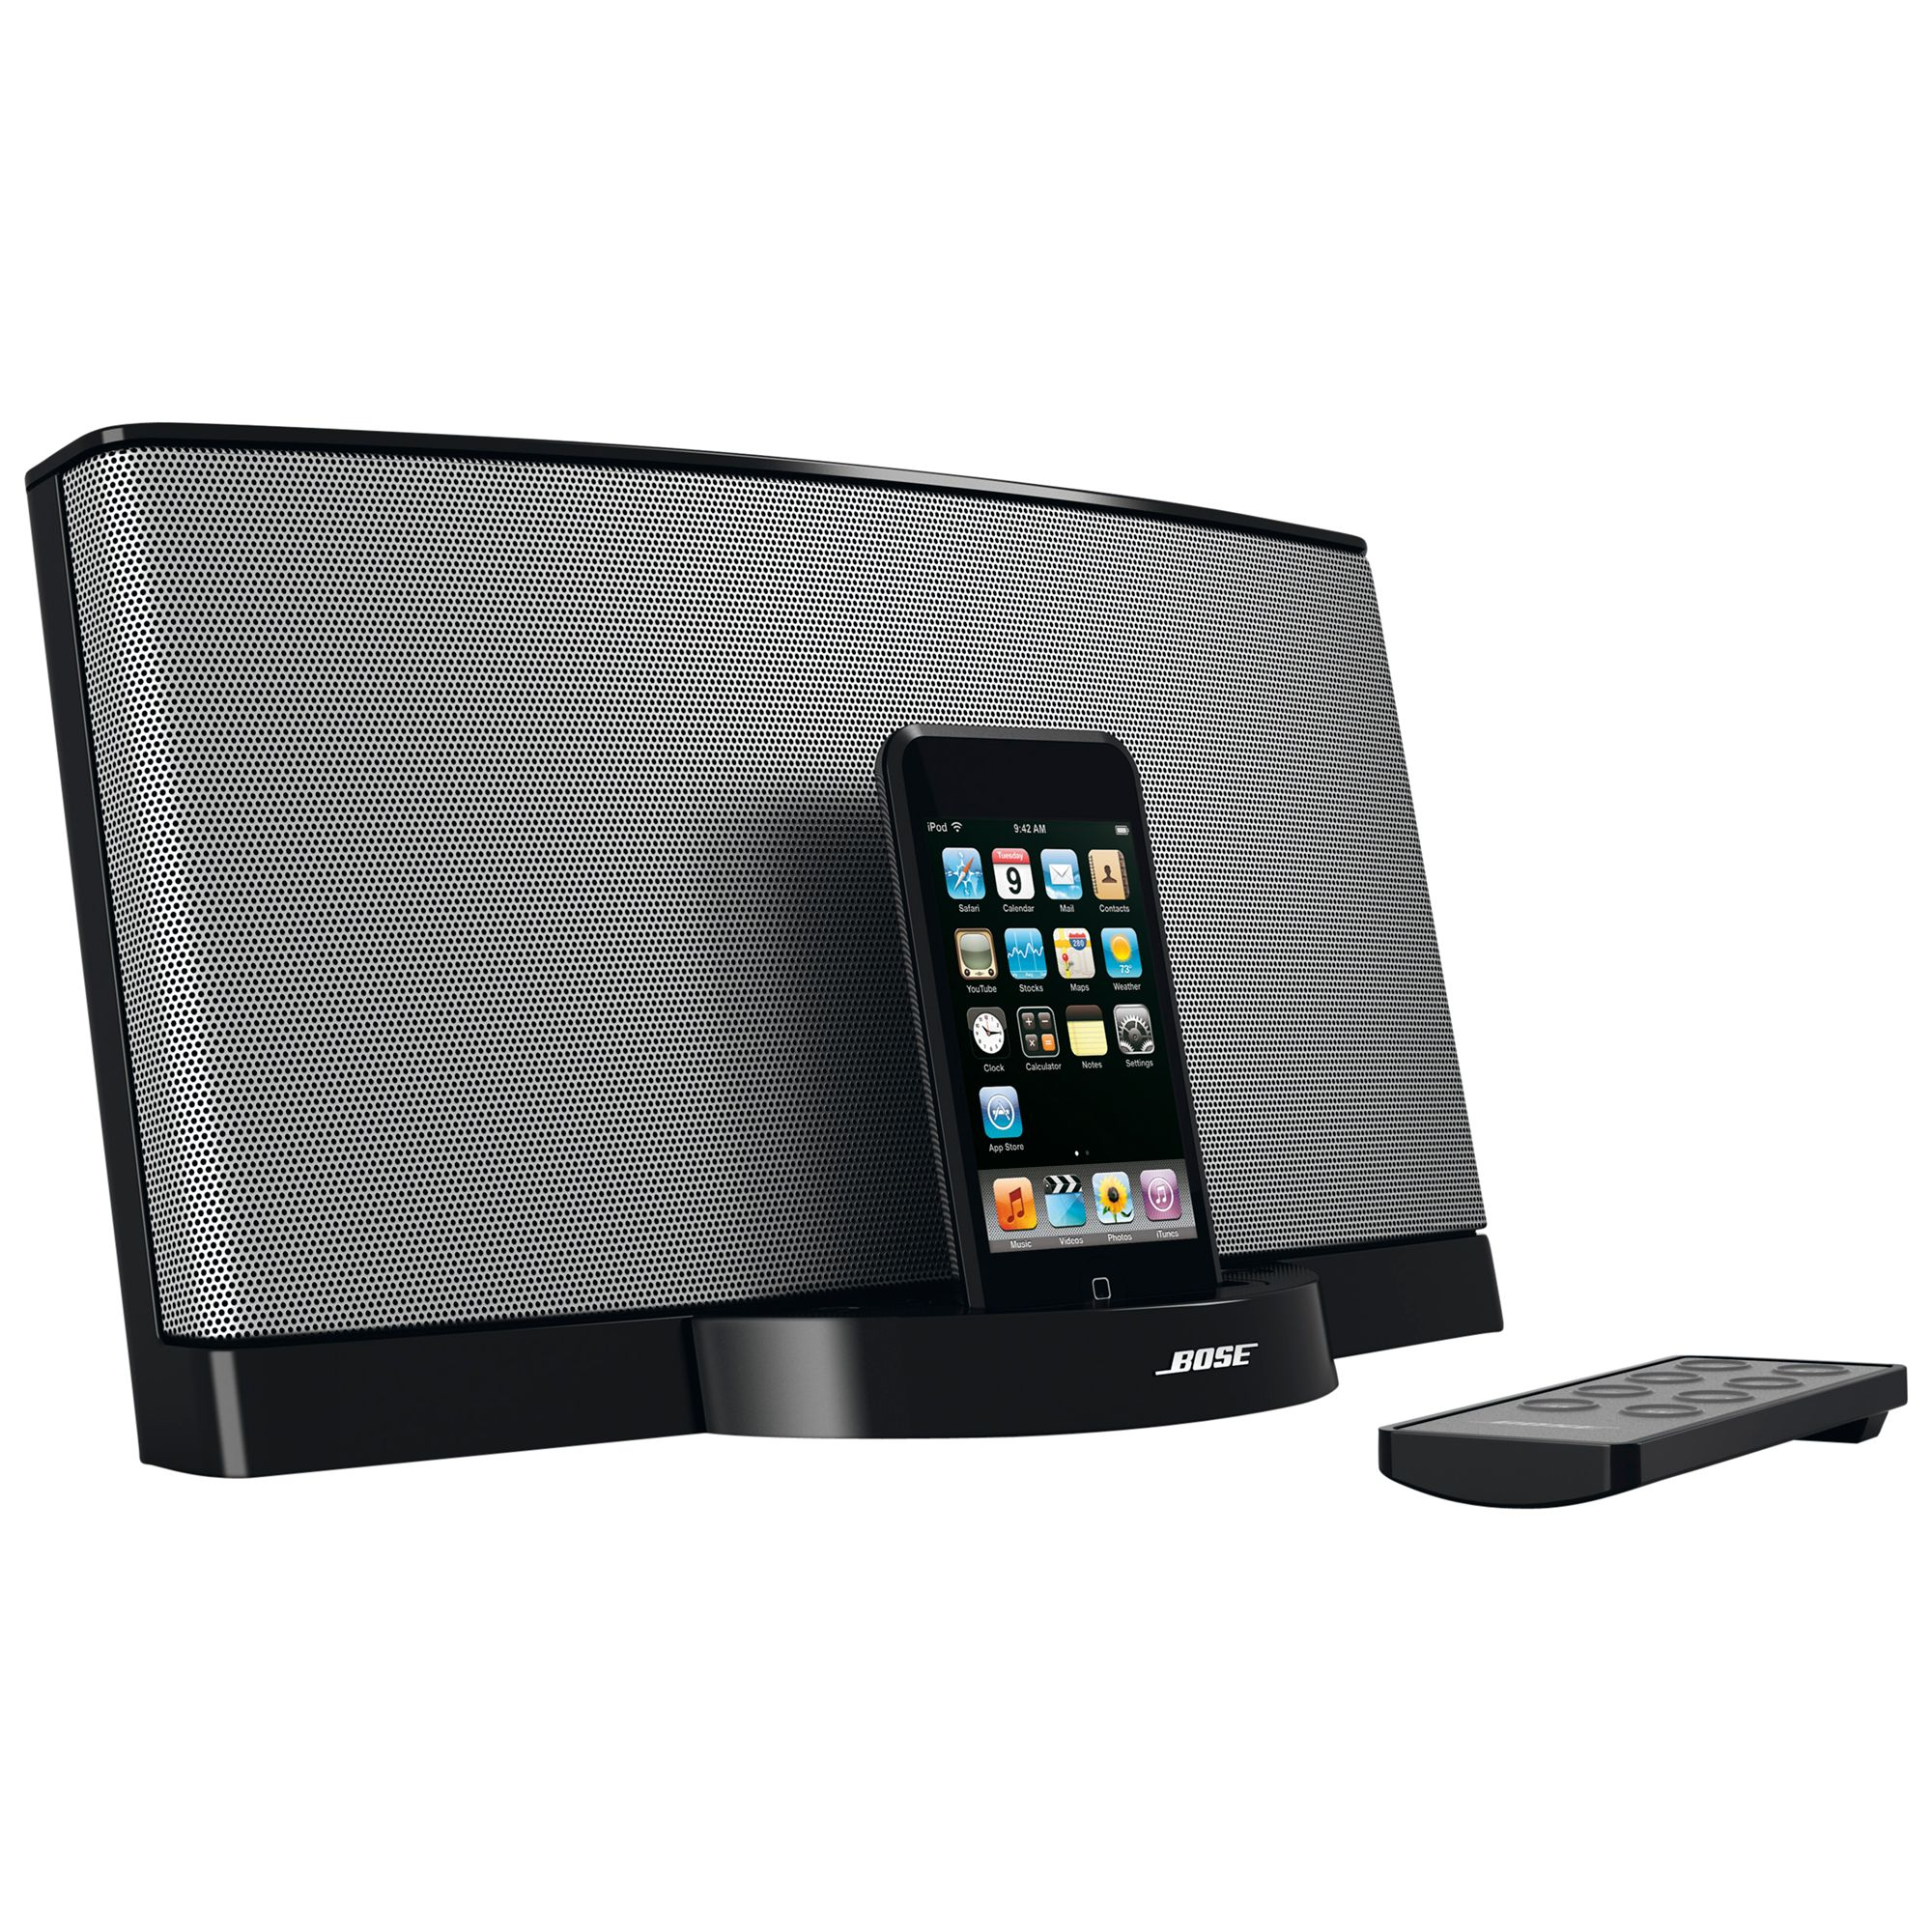 cheap bose ipod dock find the best bose sounddock deal and compare prices. Black Bedroom Furniture Sets. Home Design Ideas